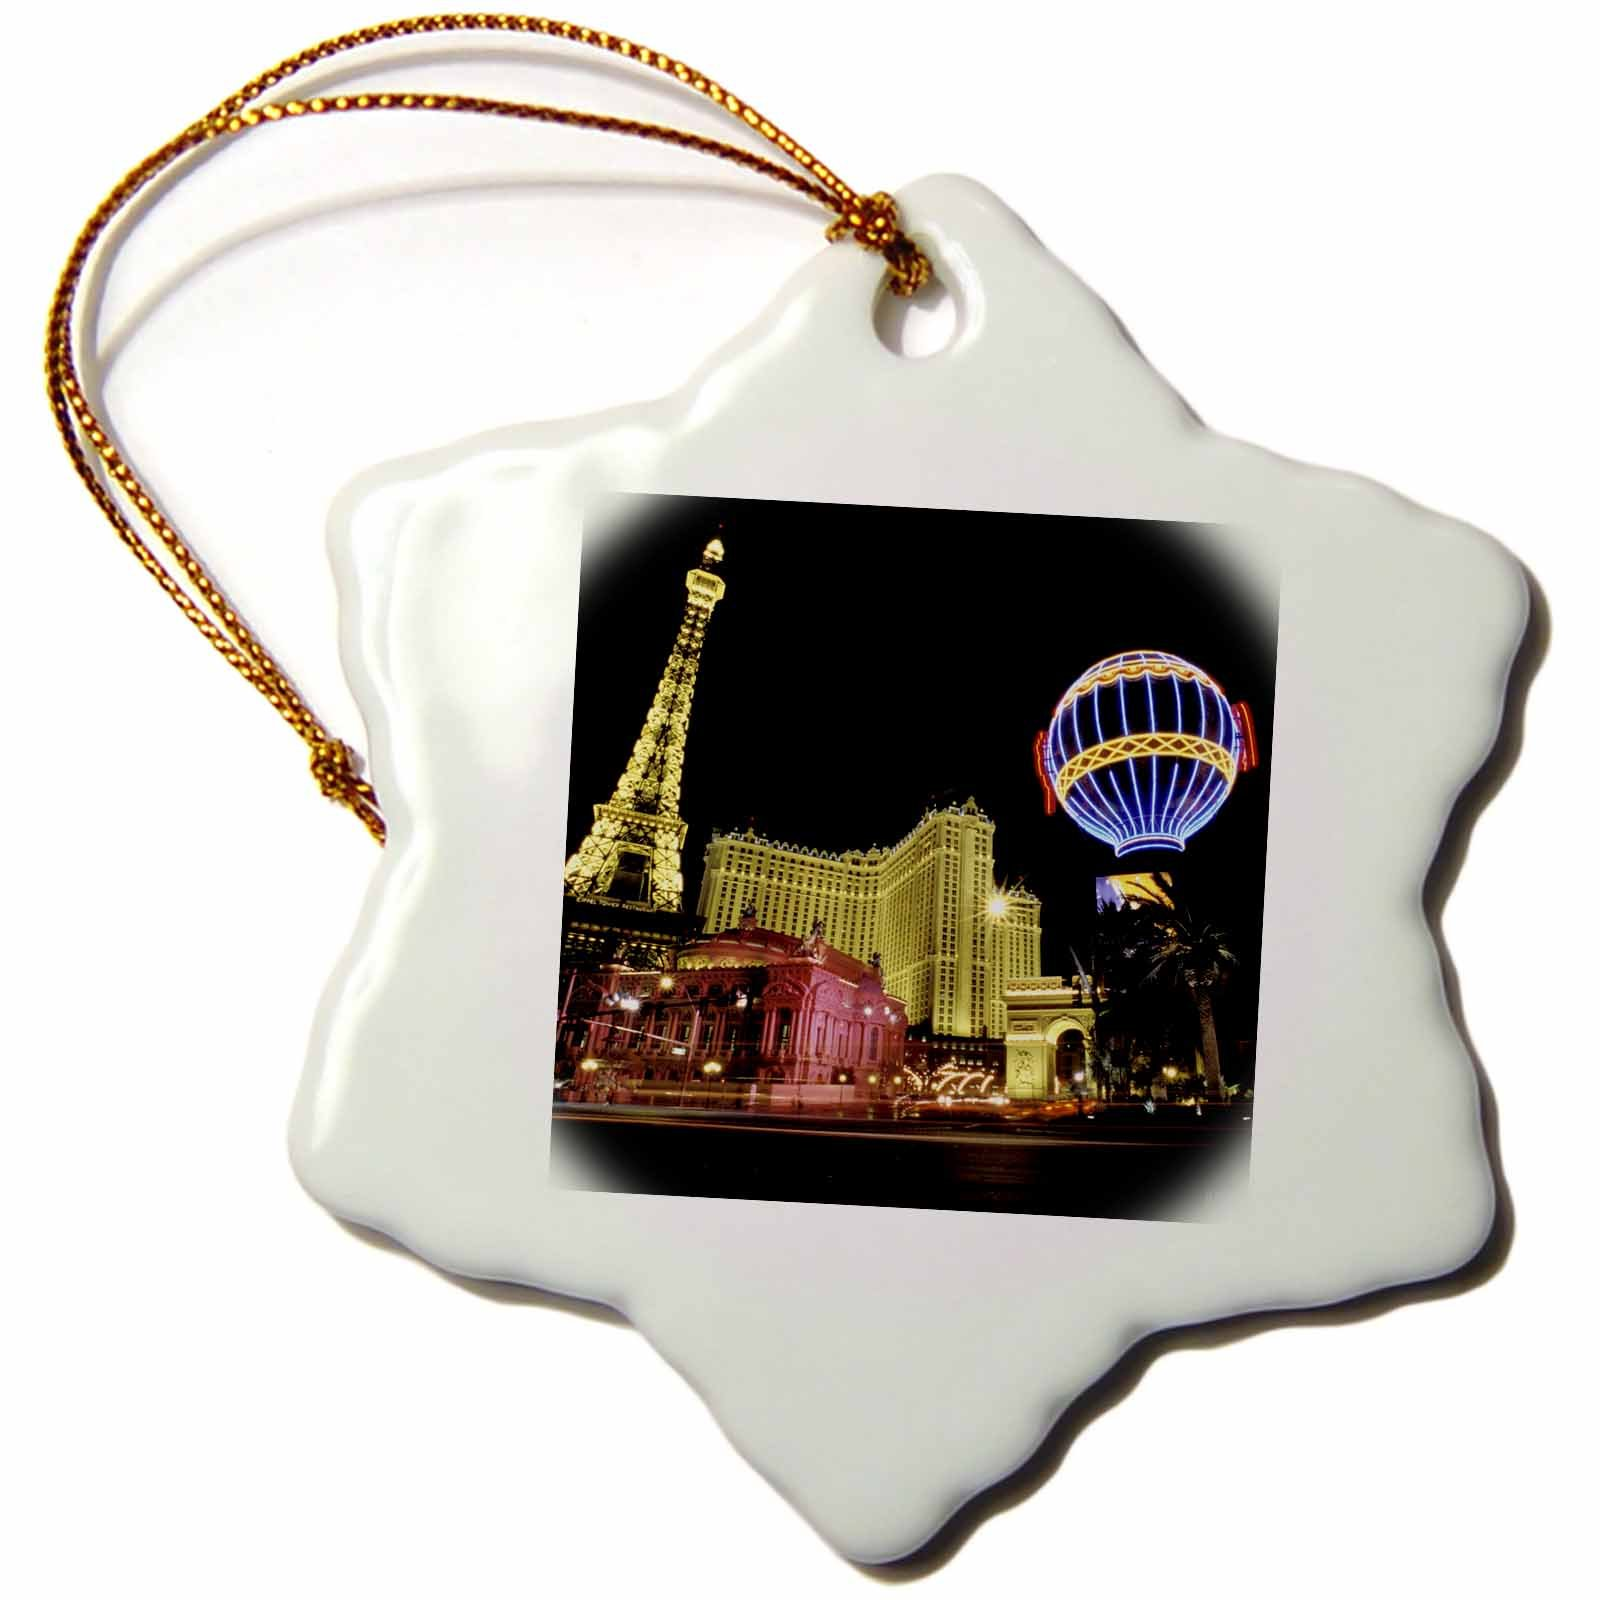 3dRose orn_37789_1 Paris Hotel and Casin at Las Vegas Strip United States Snowflake Porcelain Ornament, 3-Inch